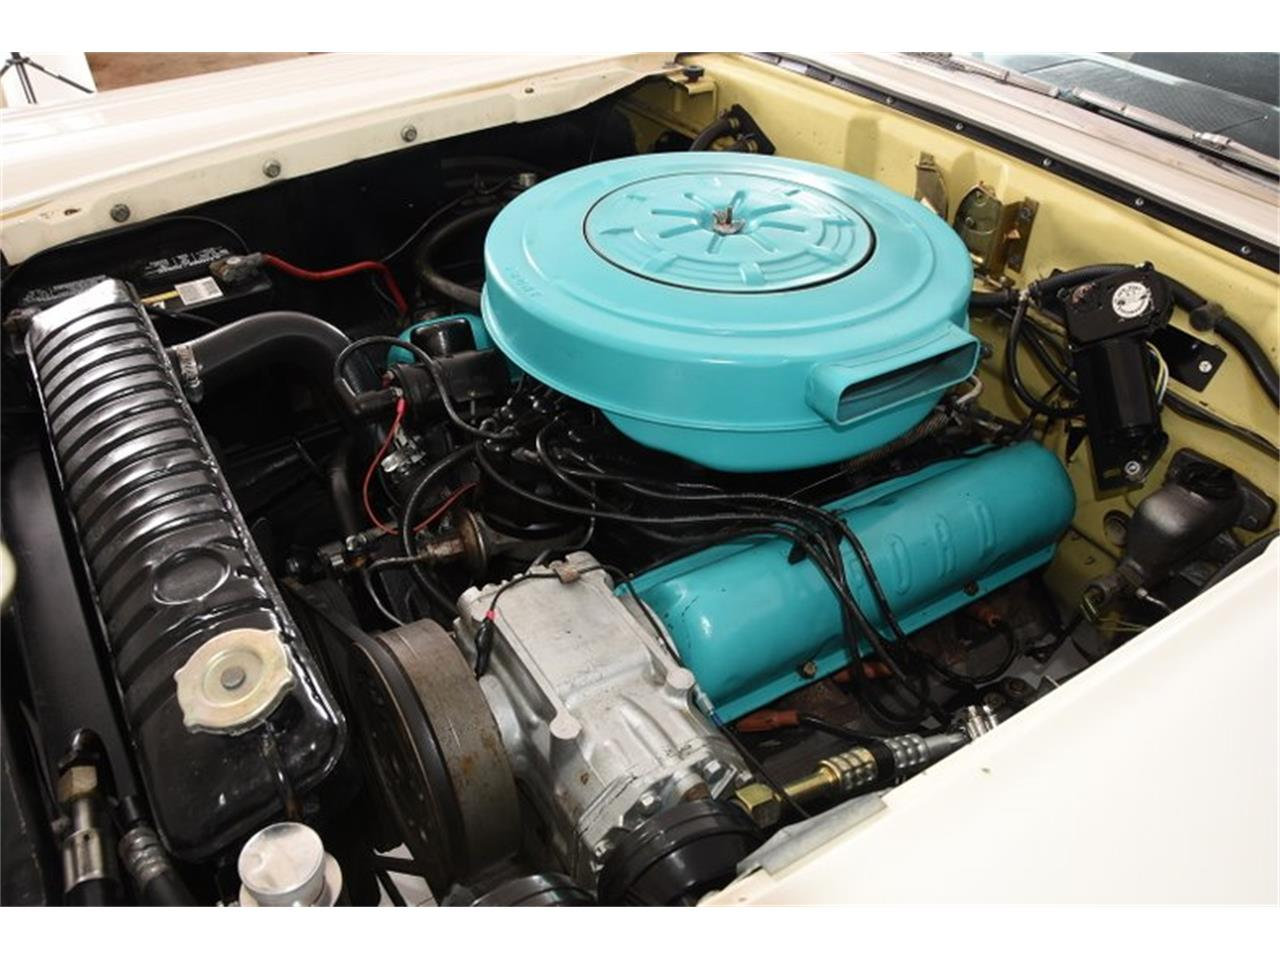 Large Picture of '59 Ford Fairlane located in Volo Illinois - $42,998.00 - OTK2